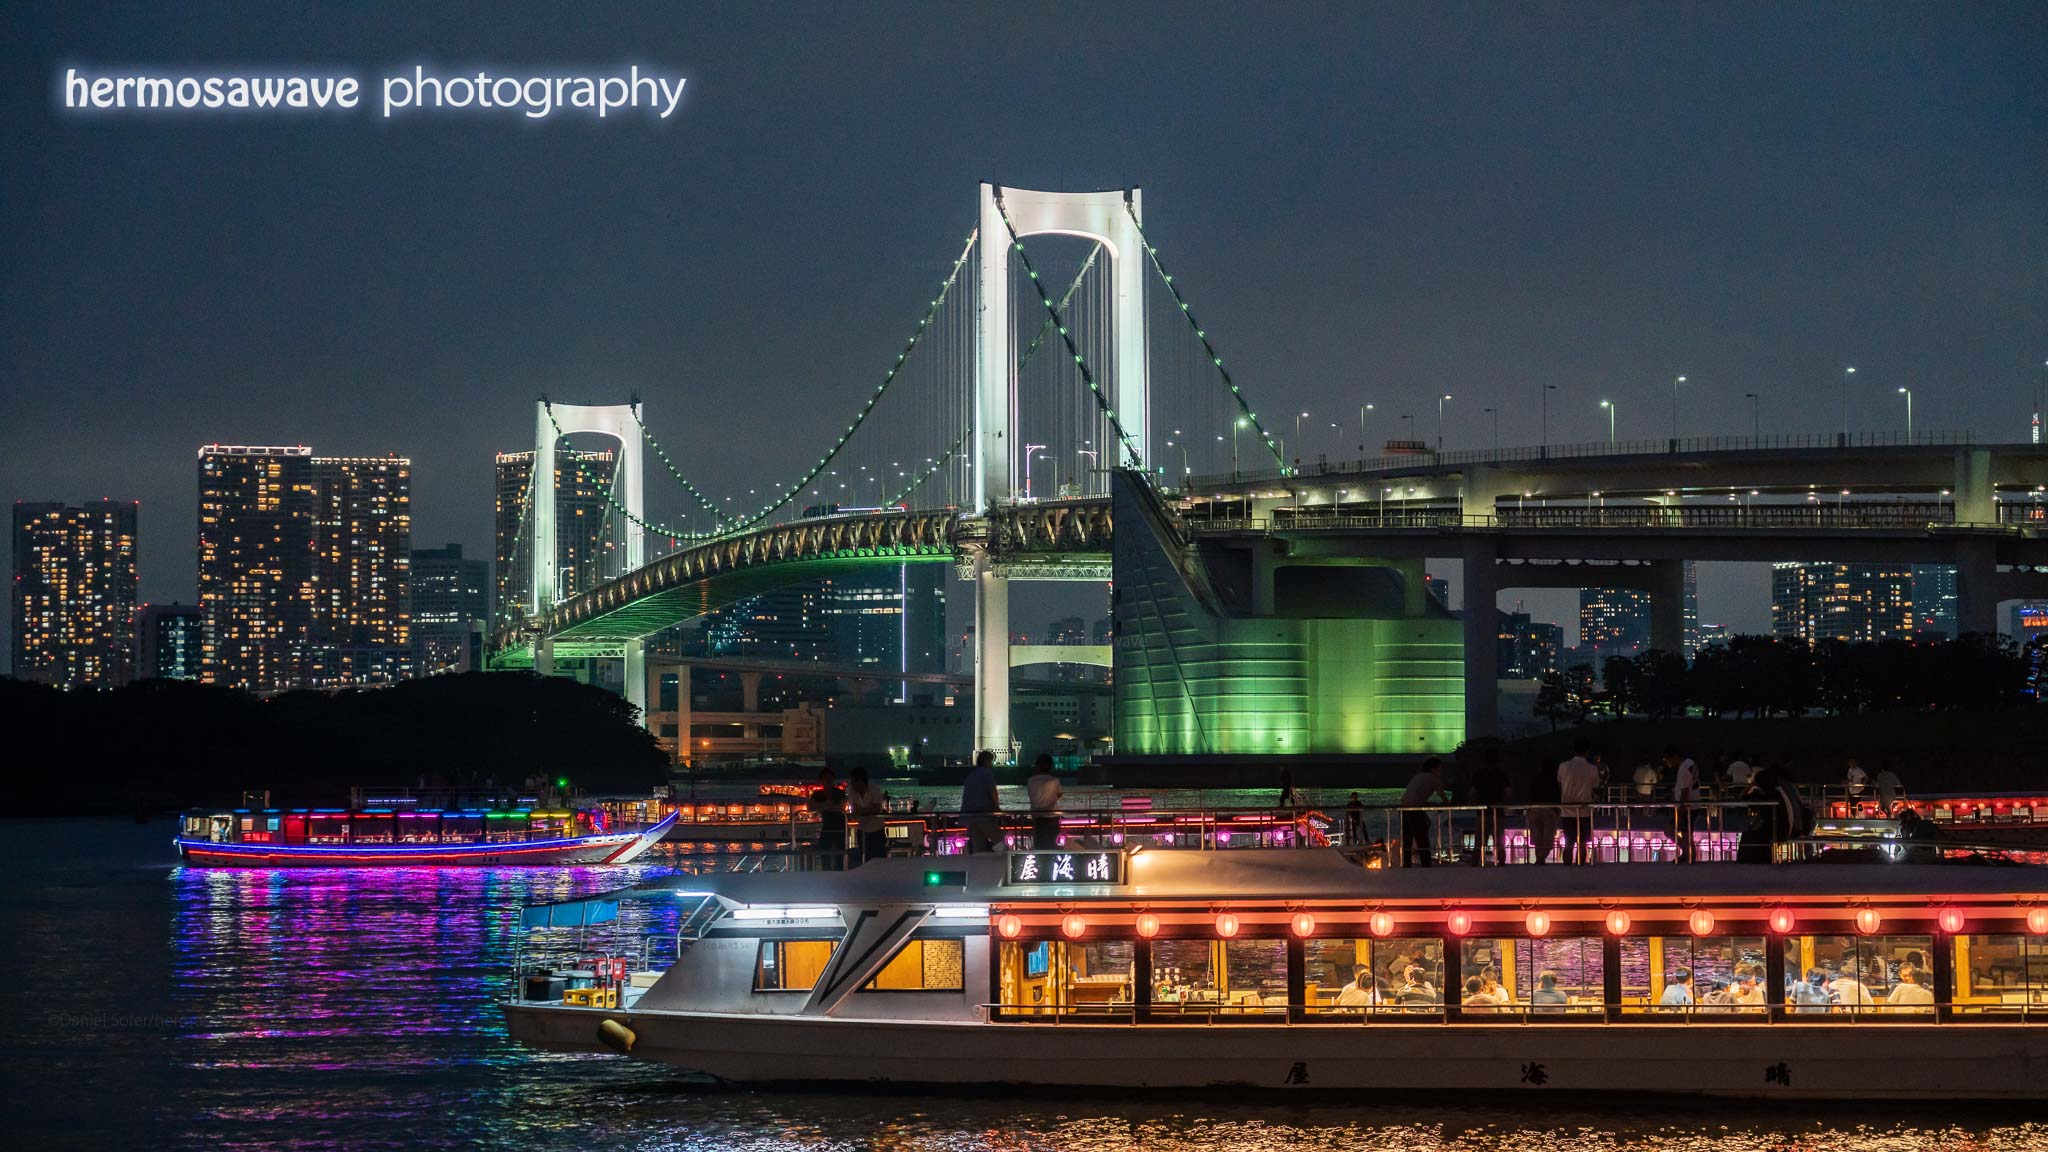 Party Boats Under the Rainbow Bridge